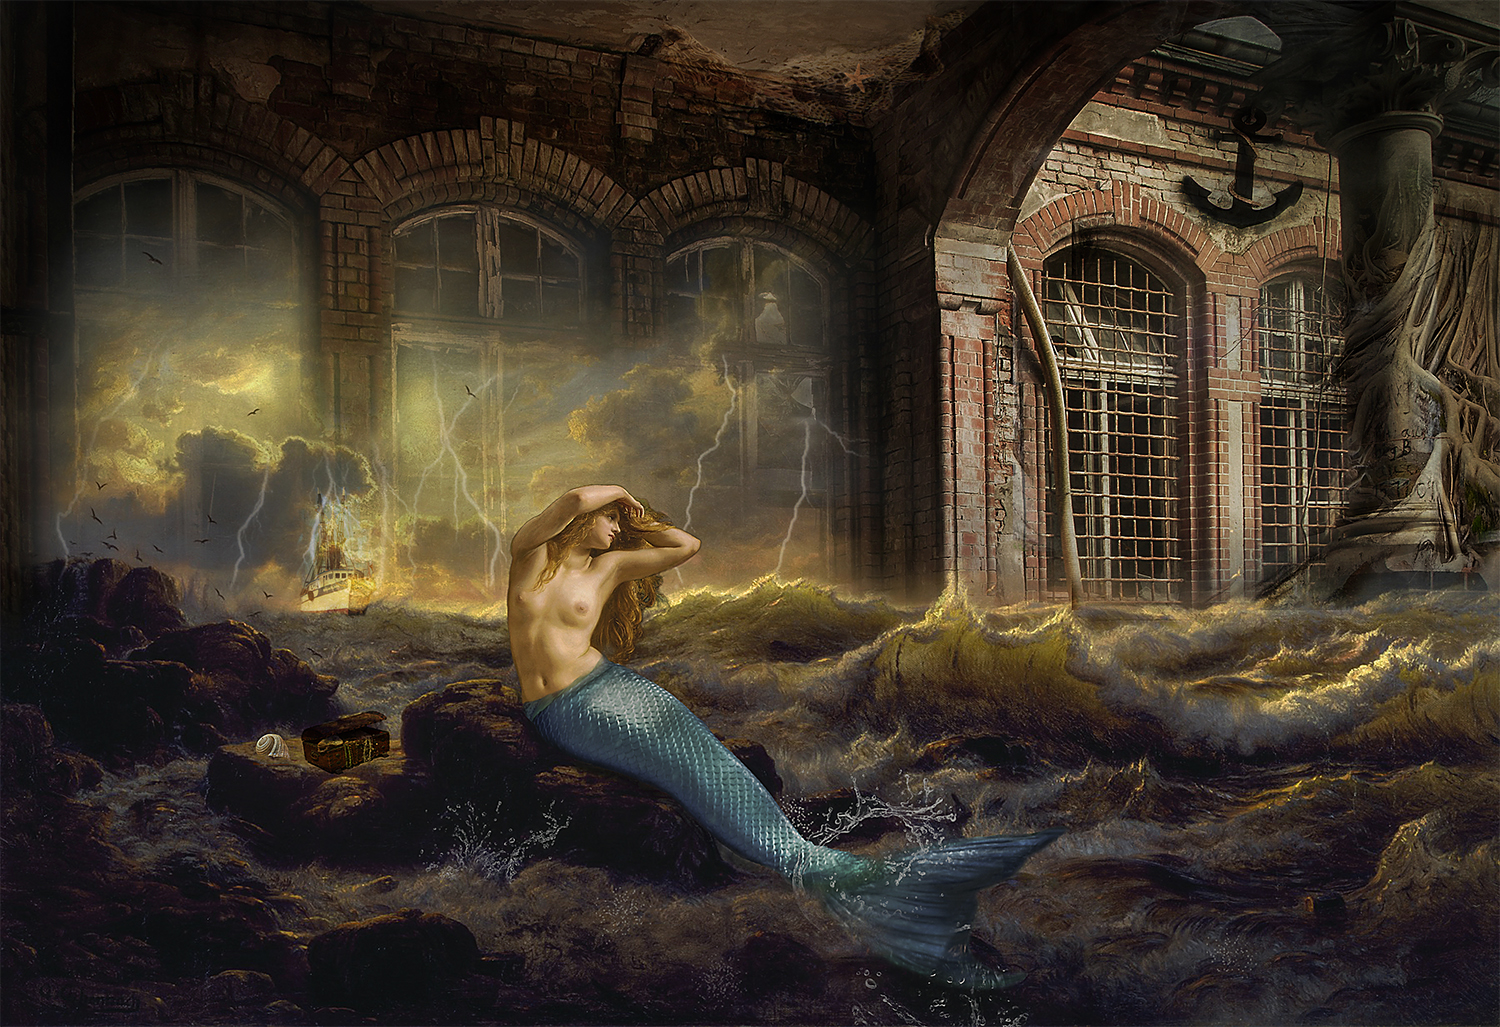 Epic-Mermaid-final-paint-website.jpg